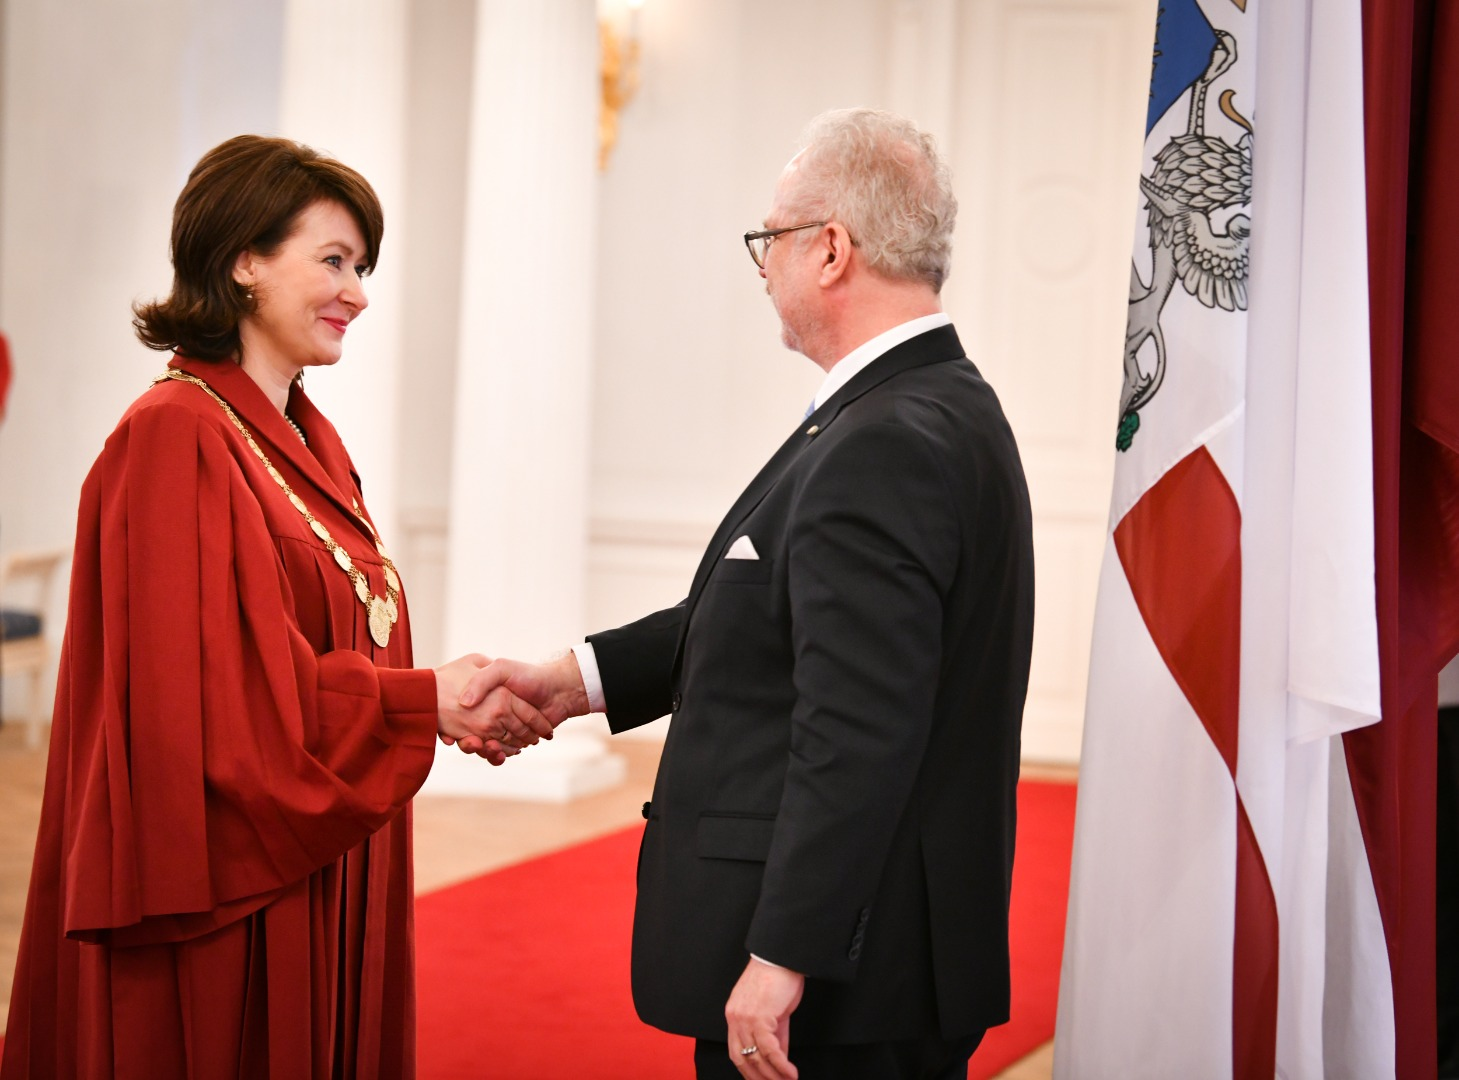 19.02.2020. At the Riga Castle, President of Latvia Egils Levits was given a solemn promise by Sandra Kaija, Doctor of Laws, who was approved by the Saeima (Parliament) as a Supreme Court judge on January 16. Sandra Kaija has more than 15 years of academic experience in the field of law at the university; she is an author of more than 70 scientific publications, an author or co-author of ten law books.